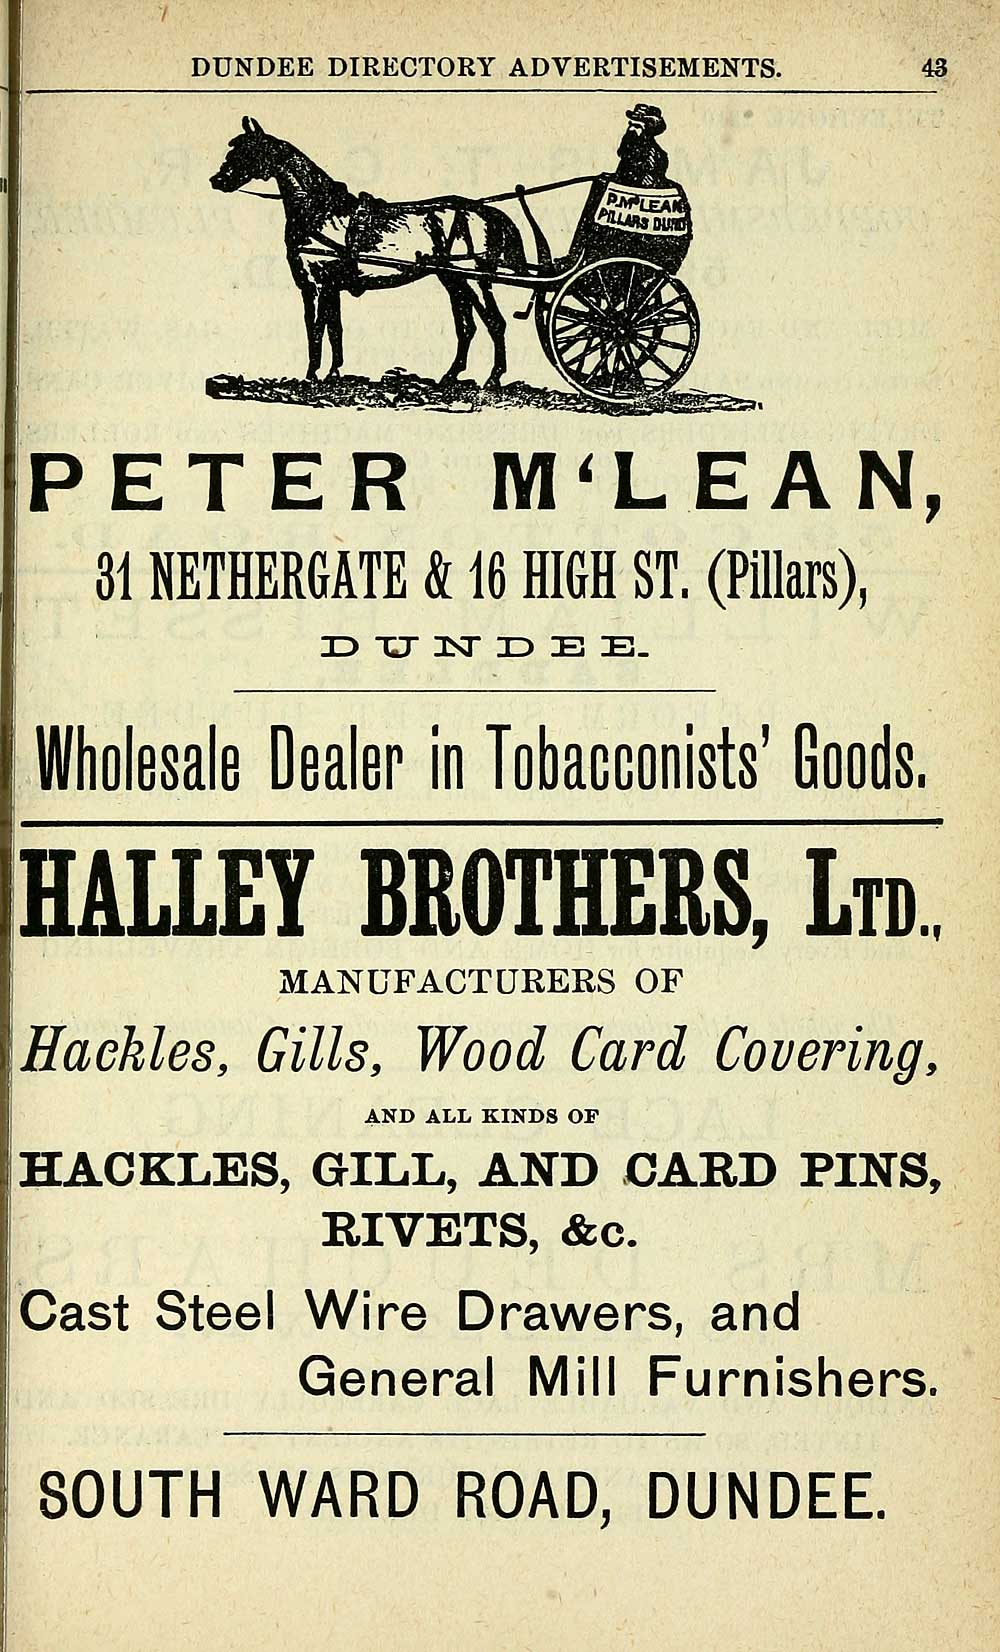 851 Towns Dundee 1809 1912 Directory 1895 1896 Wiring Harness Manufacturers Individual Page